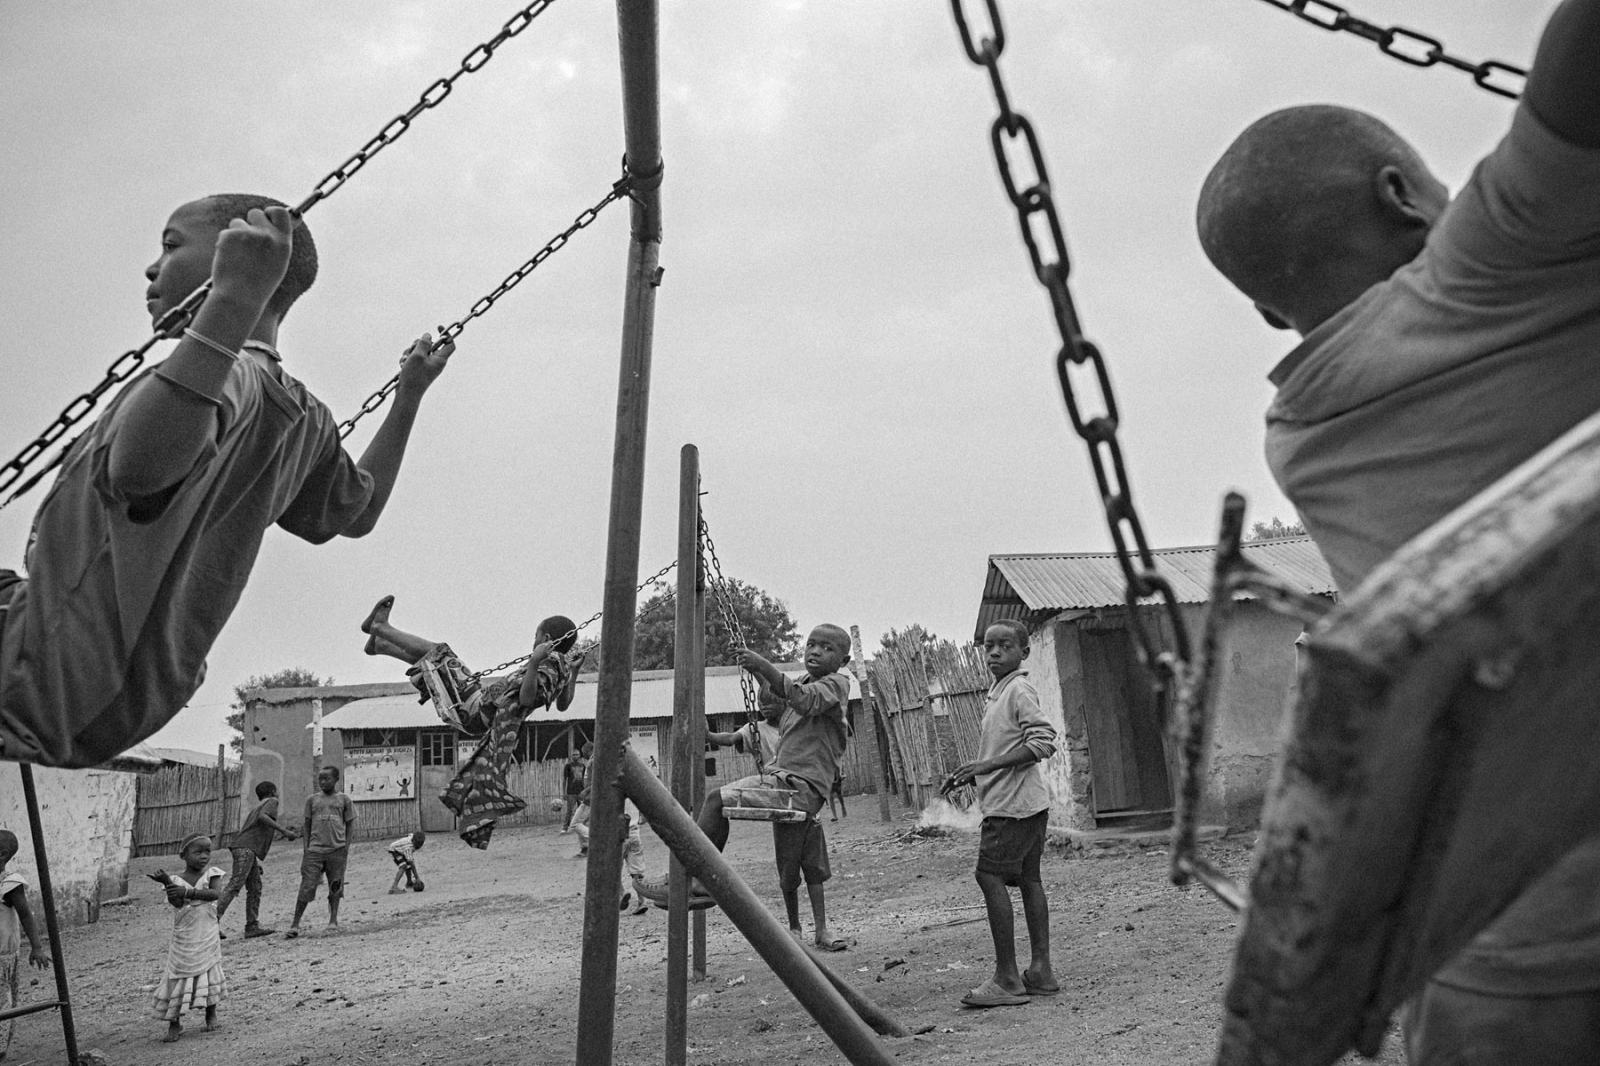 Children play on a swing set in UPDECO's reintegration center in Rutshuru, Eastern DRC, on Monday, July 21, 2014. Poverty and a cycle of violence in the decades long conflict makes children susceptible to being forcibly recruited by the myriad militia groups operating in the east of the country.